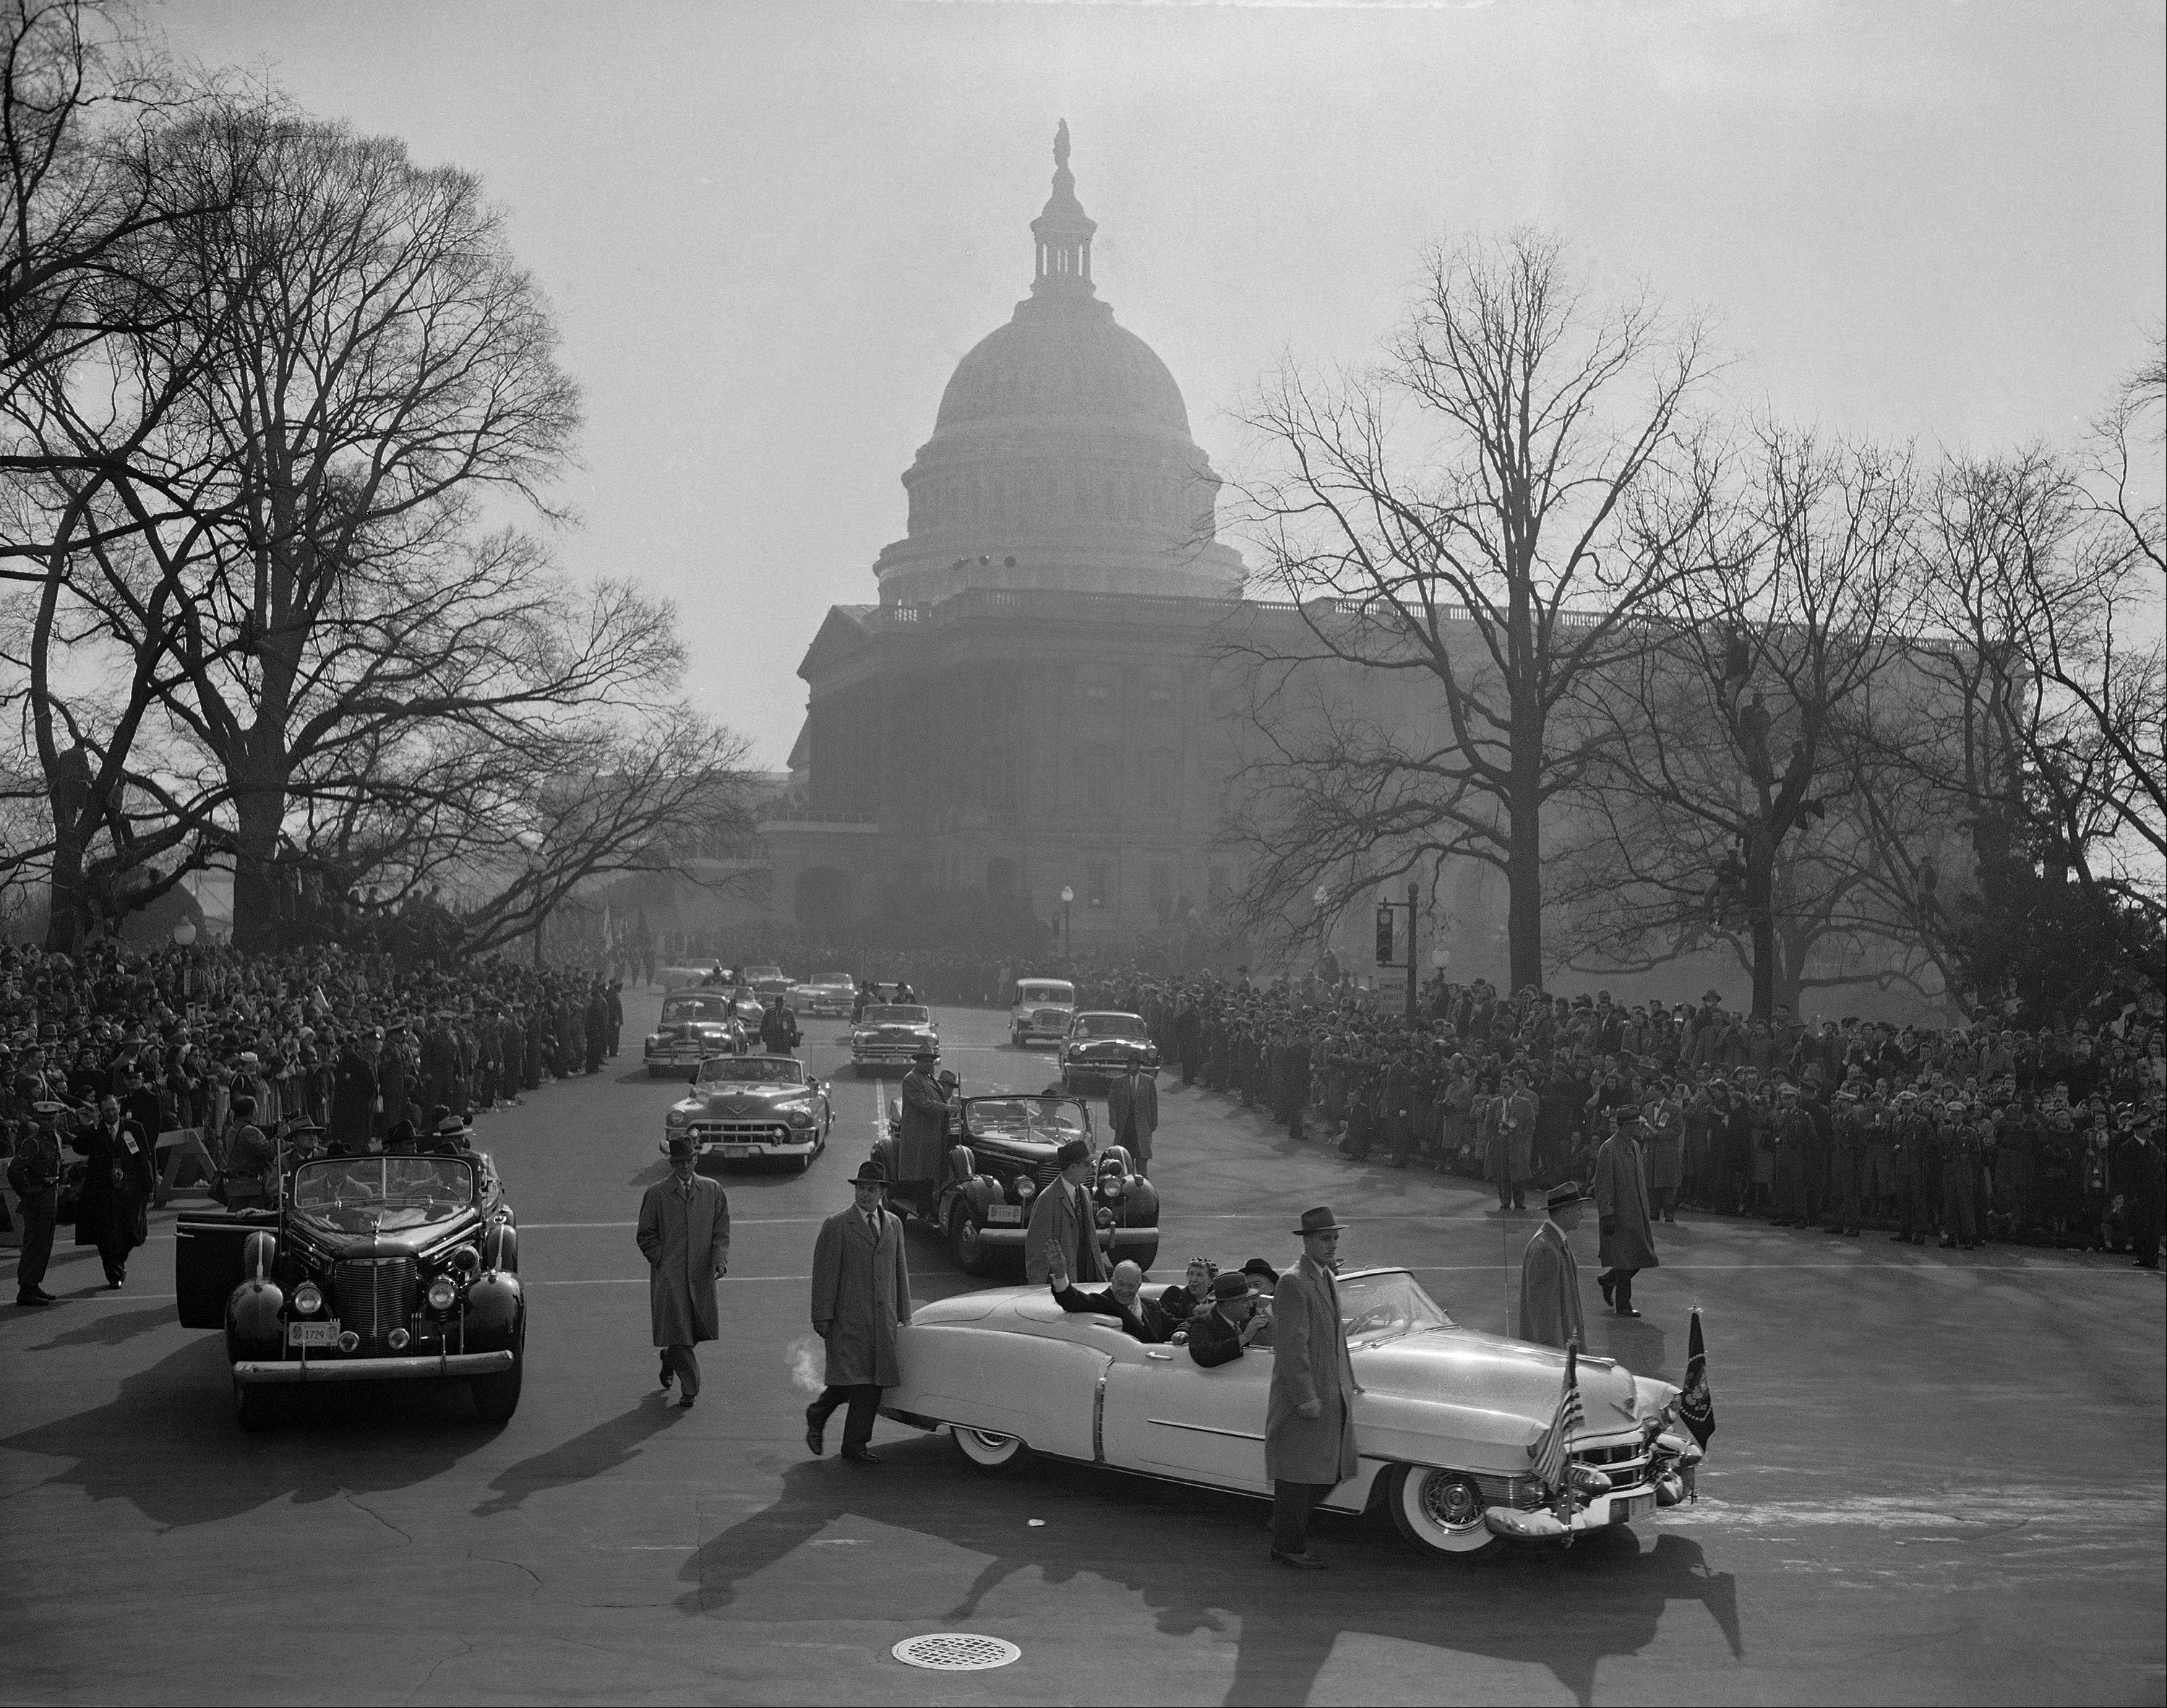 Riding in open a car, the Dwight Eisenhower lead inaugural parade from Capital grounds after the swearing in ceremonies in Washington, Jan. 20, 1953. Ike waves as car turns onto Constitution Avenue. In background is Capitol dome.